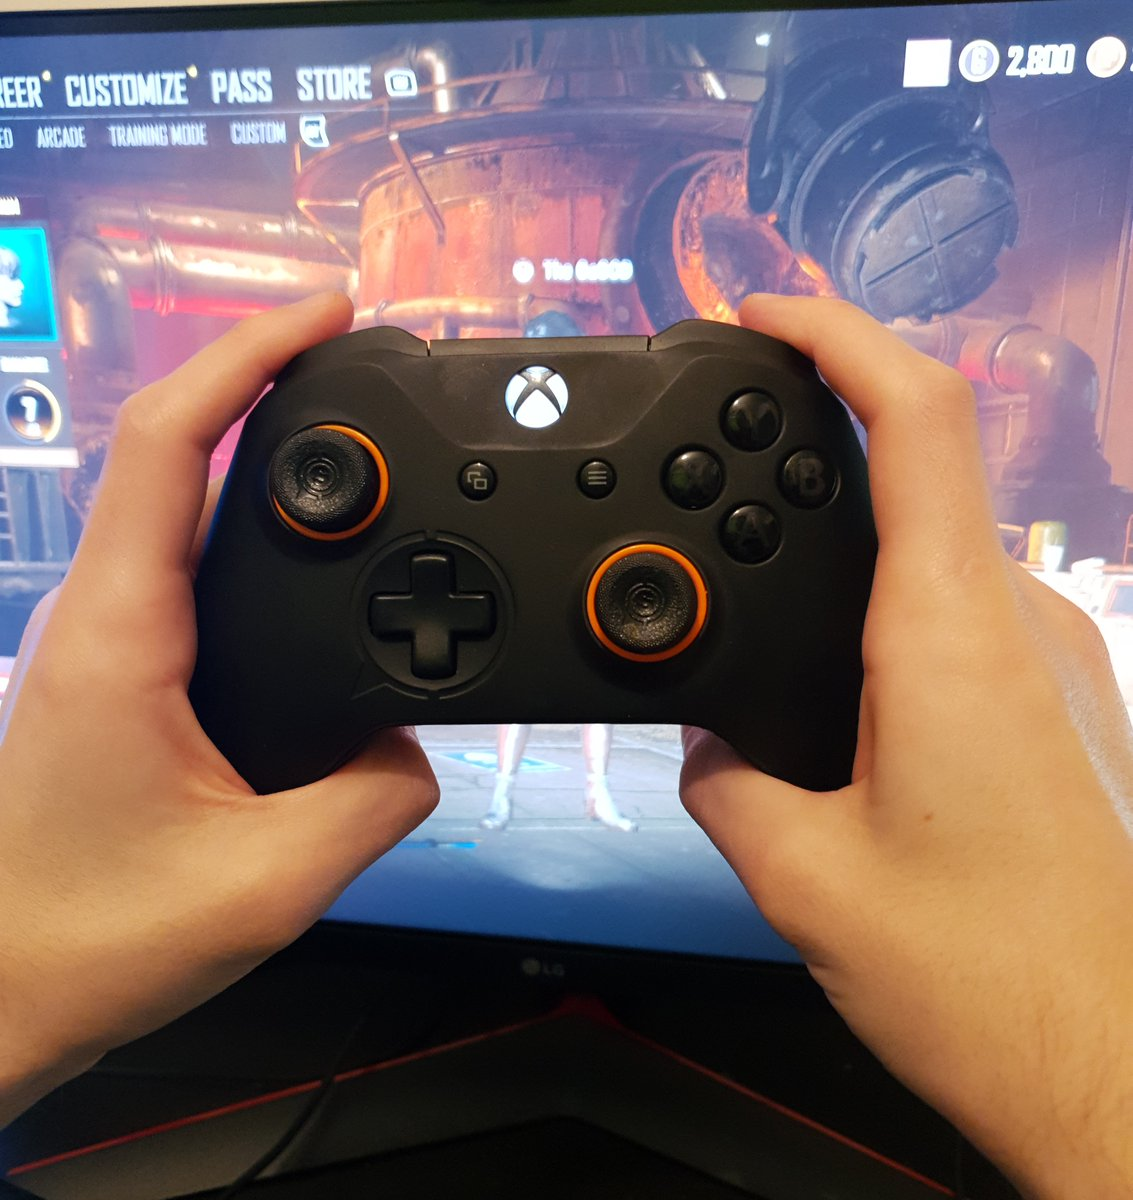 GaGOD - Just switched to the new digital triggers & my GOD I'm hitting different! @ScufGaming   Any questions ask below ⬇️⬇️⬇️  Don't forget you can get 5% with my link  or code GaGOD at checkout!  #scuf #Ad #twitchcommunity